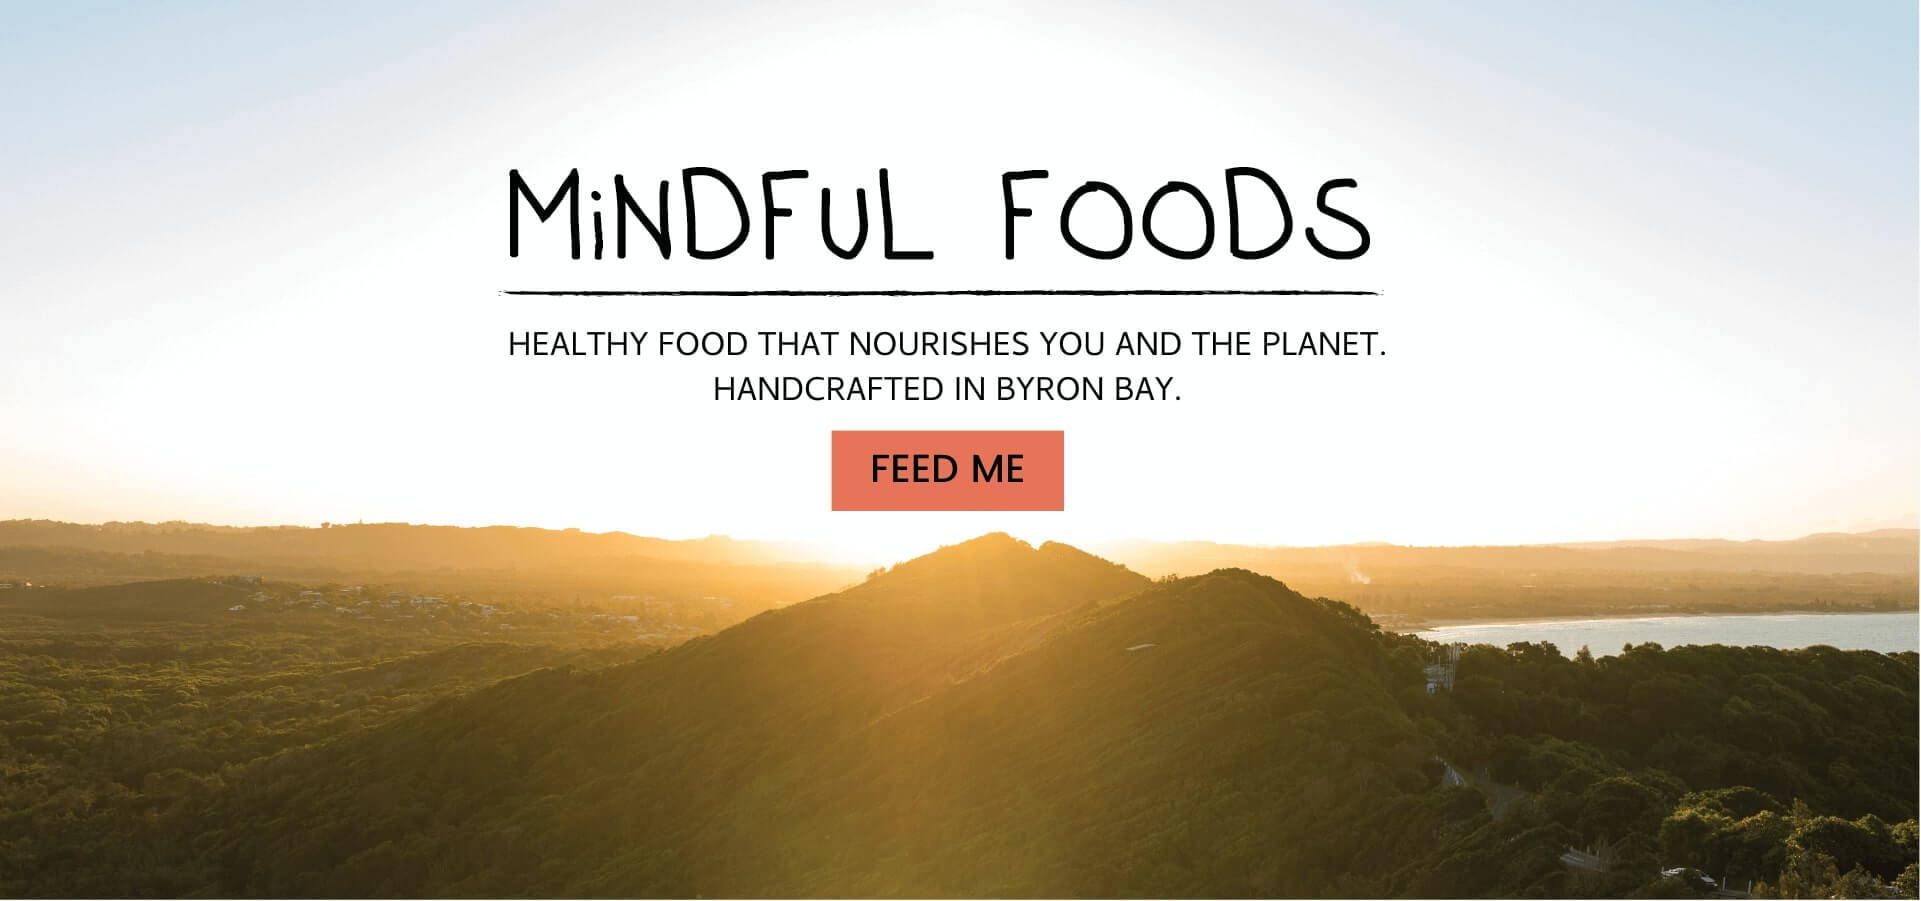 Mindful Foods- Healthy Food that nourishes you and the Planet. Handcrafted in Byron Bay.